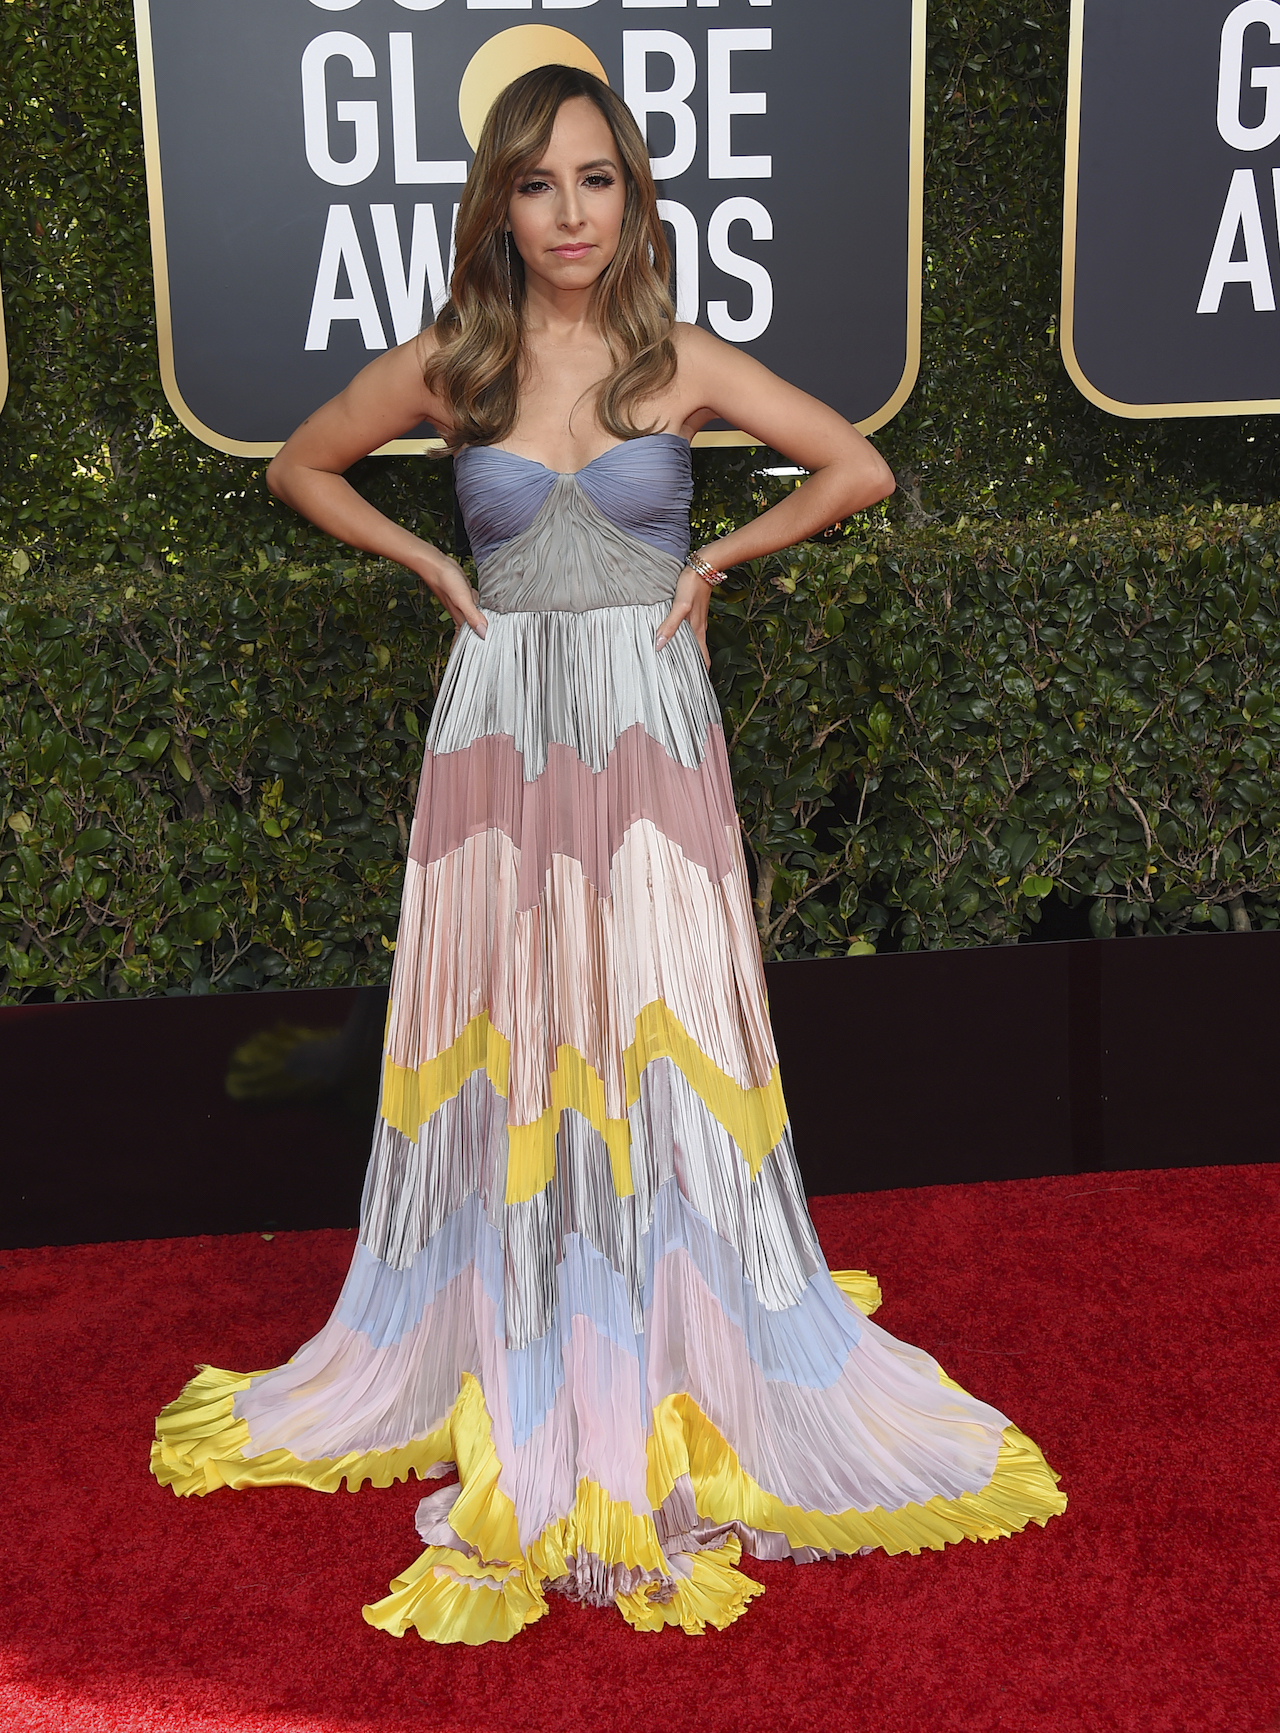 <div class='meta'><div class='origin-logo' data-origin='AP'></div><span class='caption-text' data-credit='Jordan Strauss/Invision/AP'>Lilliana Vazquez arrives at the 76th annual Golden Globe Awards at the Beverly Hilton Hotel on Sunday, Jan. 6, 2019, in Beverly Hills, Calif.</span></div>